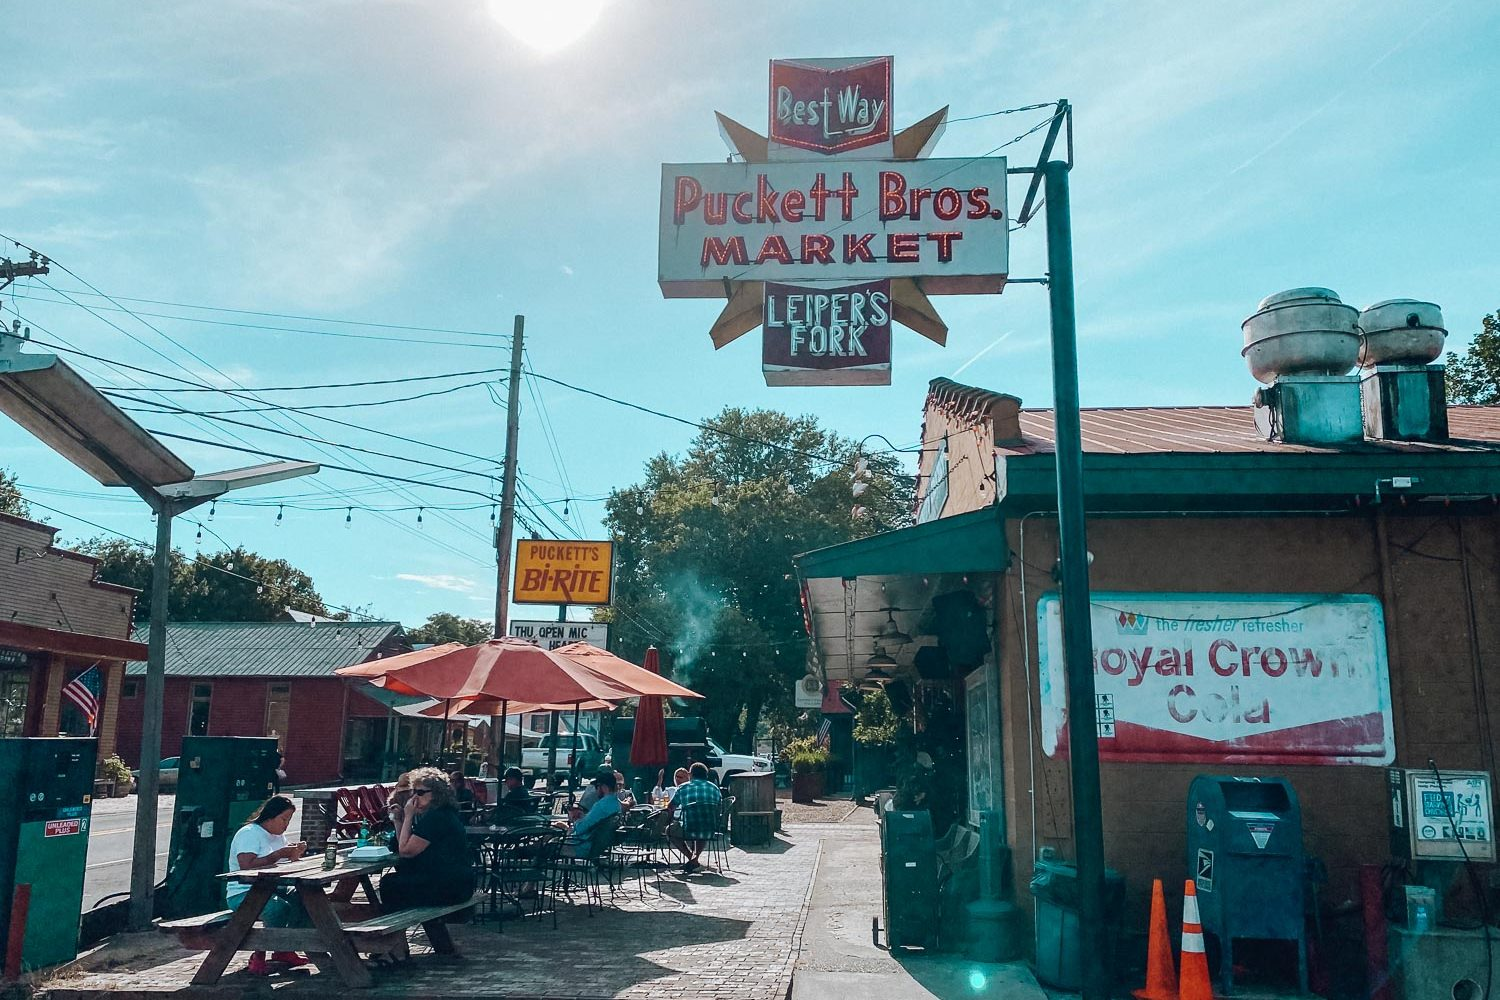 Puckett Bros Market in Leiper's Fork Tennesee, one of the fun things to do in the cute little town - bucket list travel